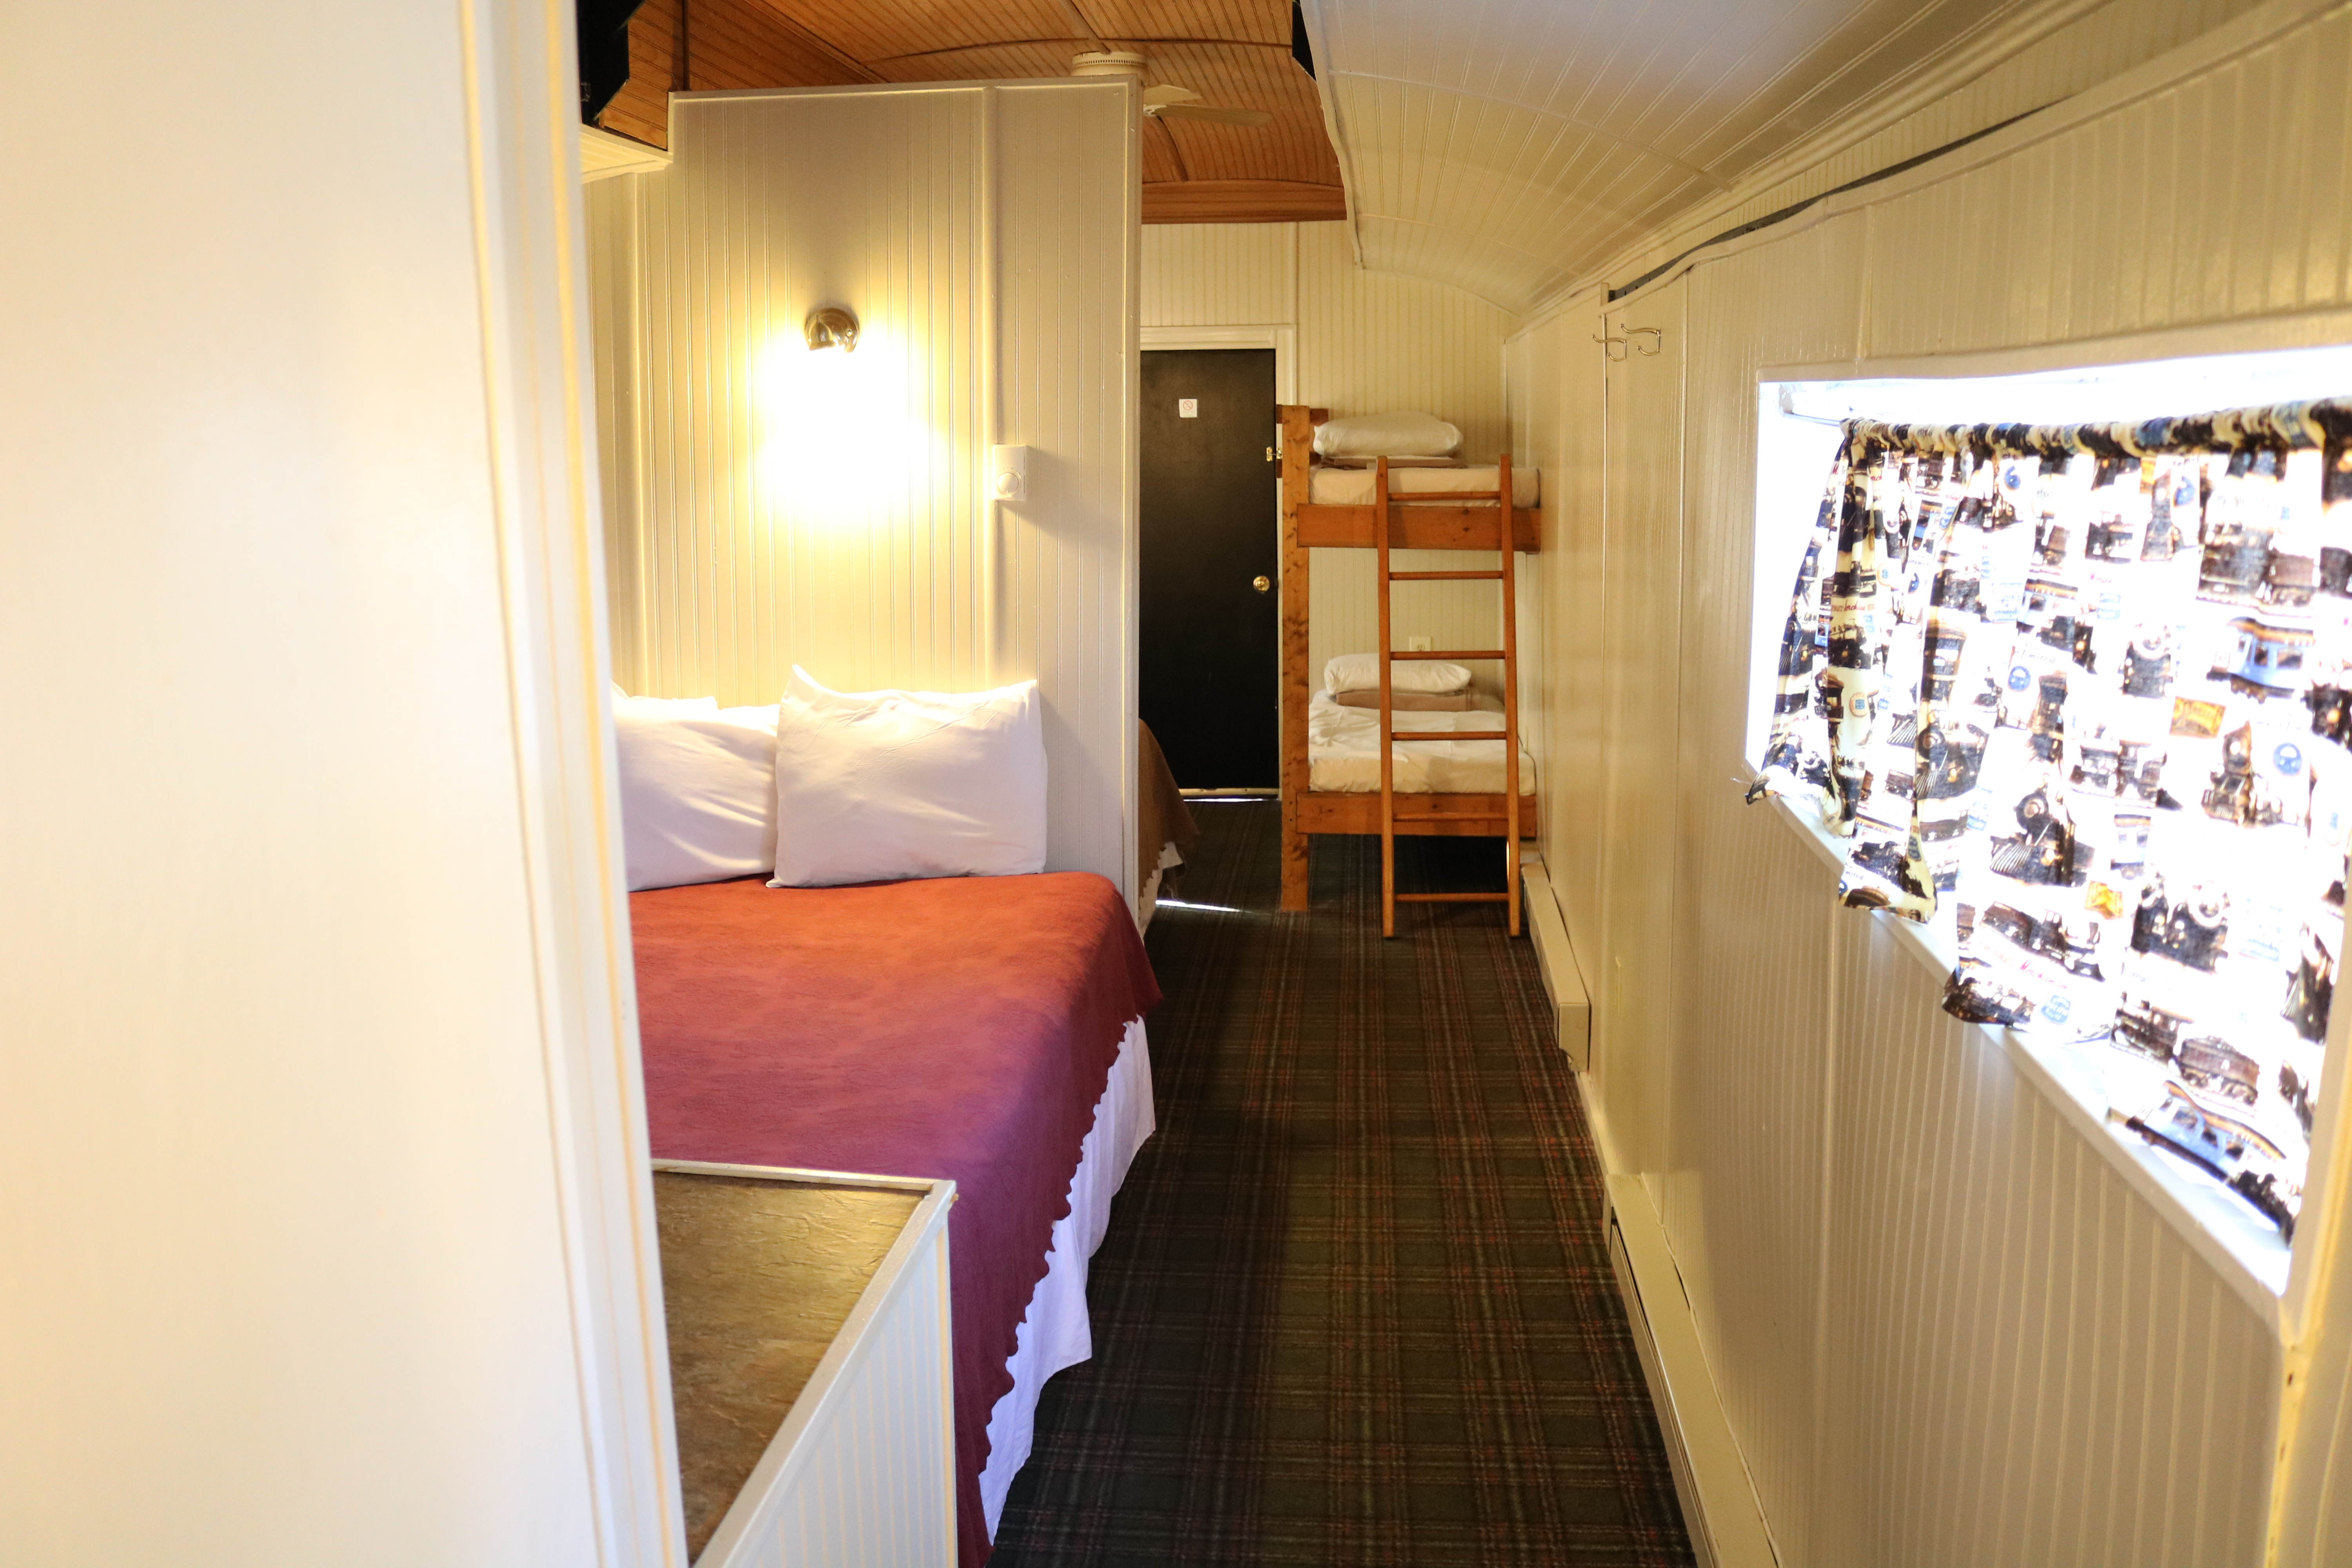 interior view of baggage car motel room